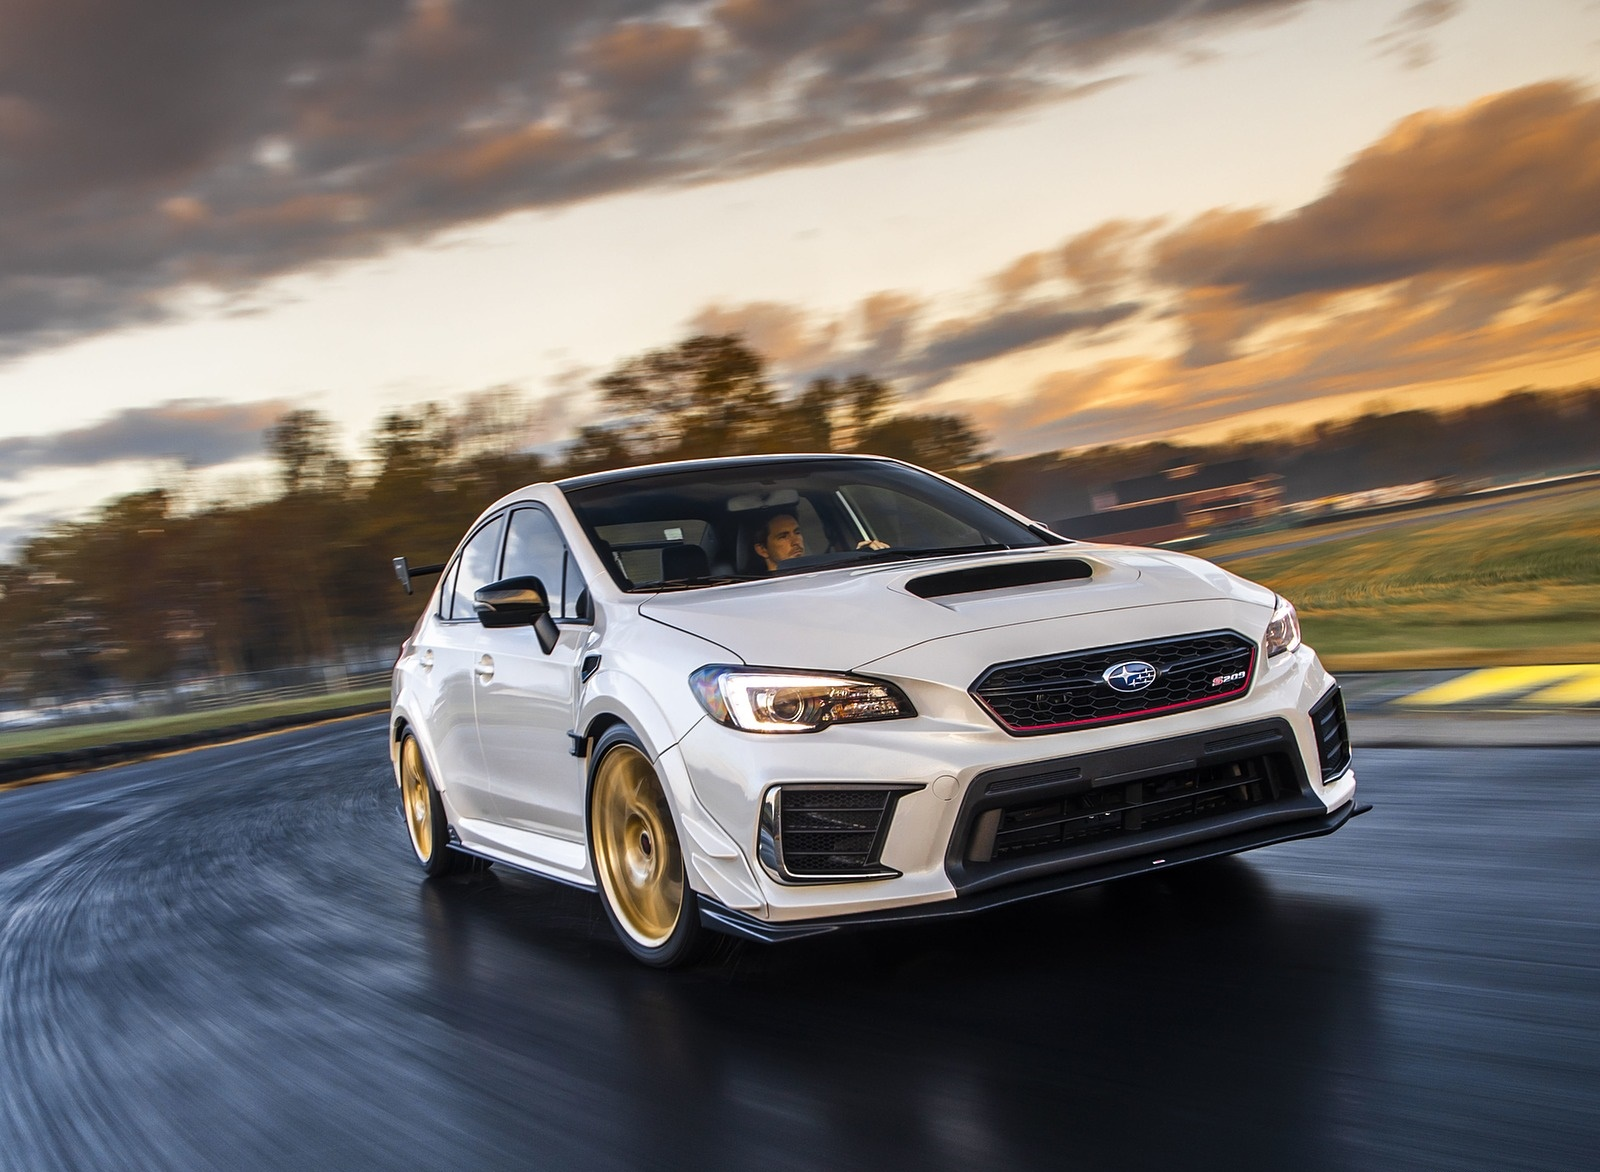 2019 Subaru WRX STI S209 Front Three-Quarter Wallpapers (9)